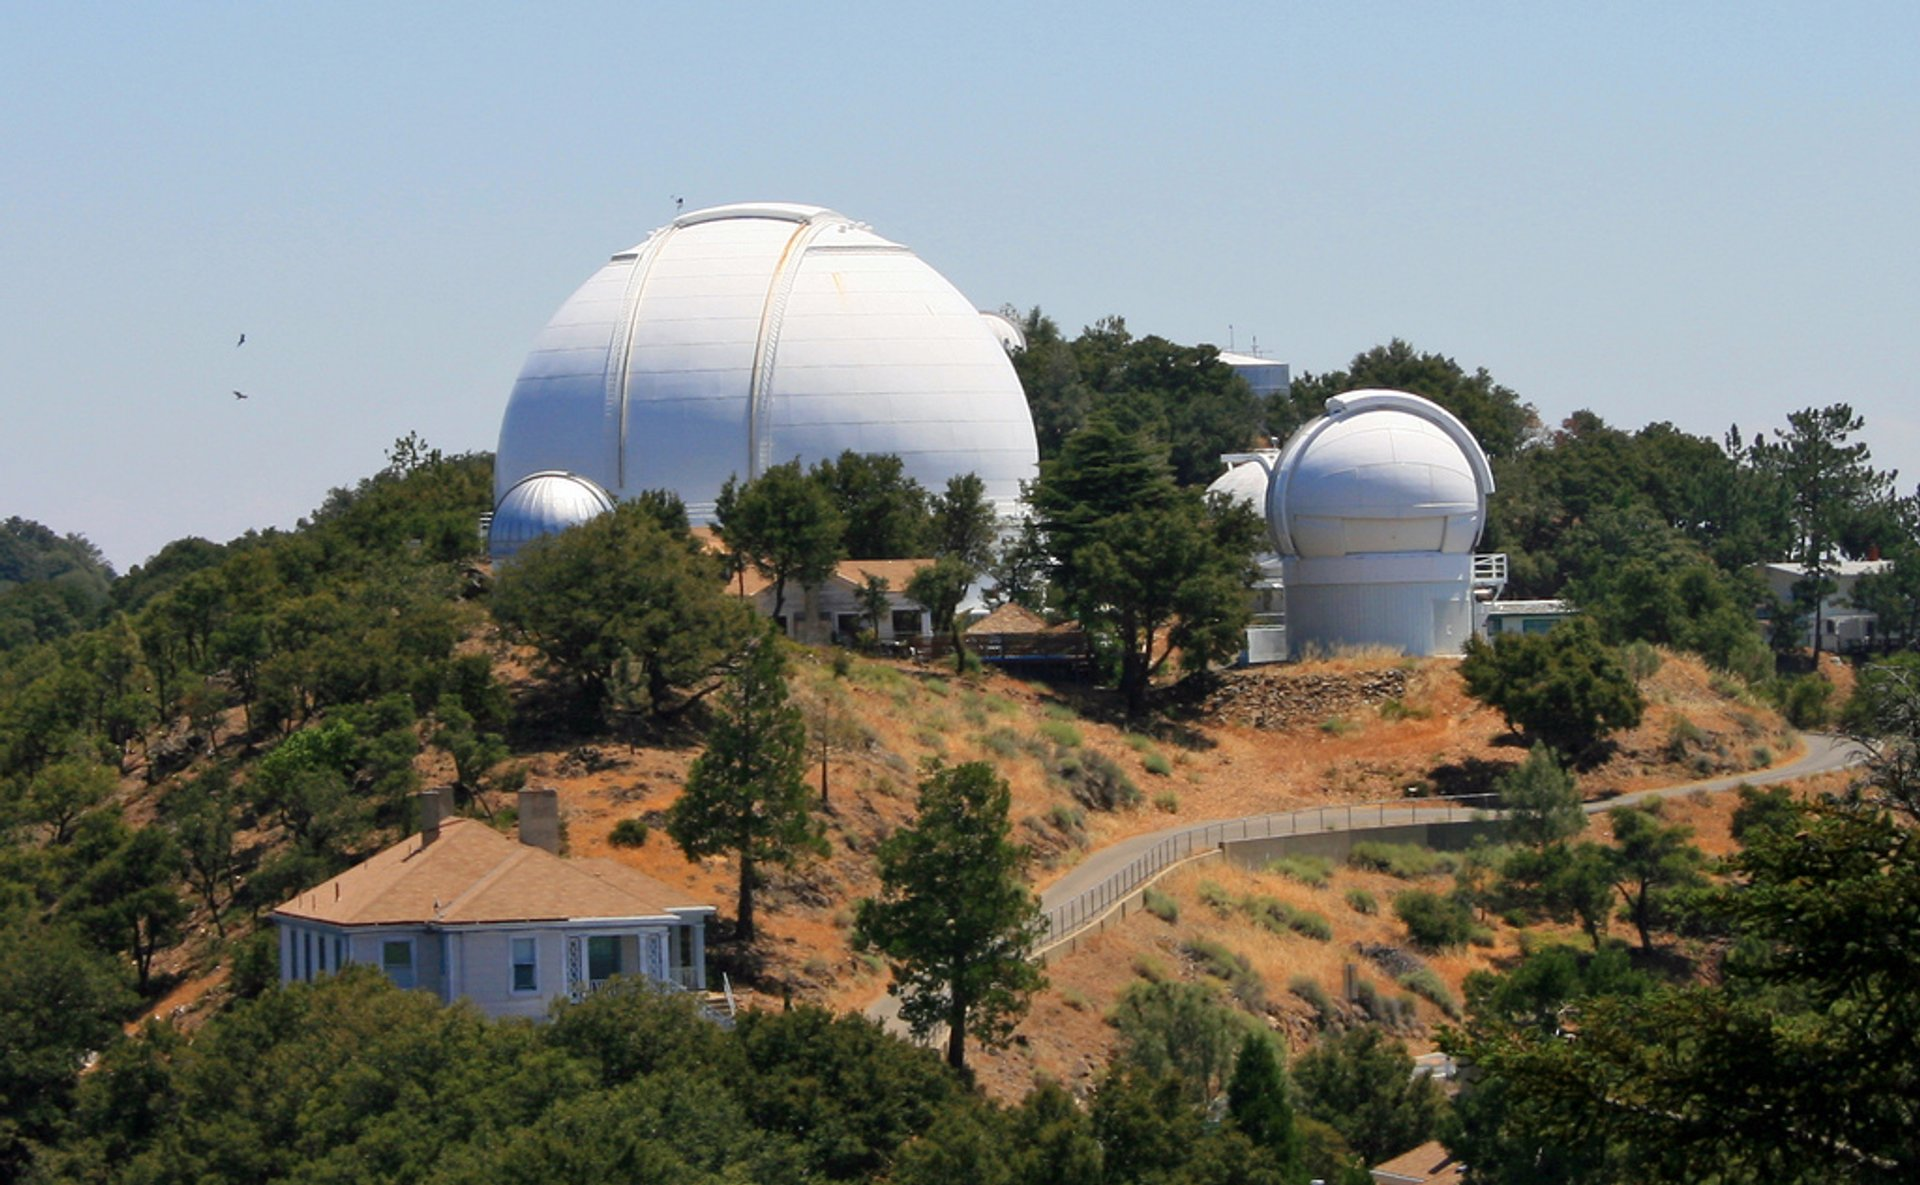 Lick Observatory in California 2019 - Best Time